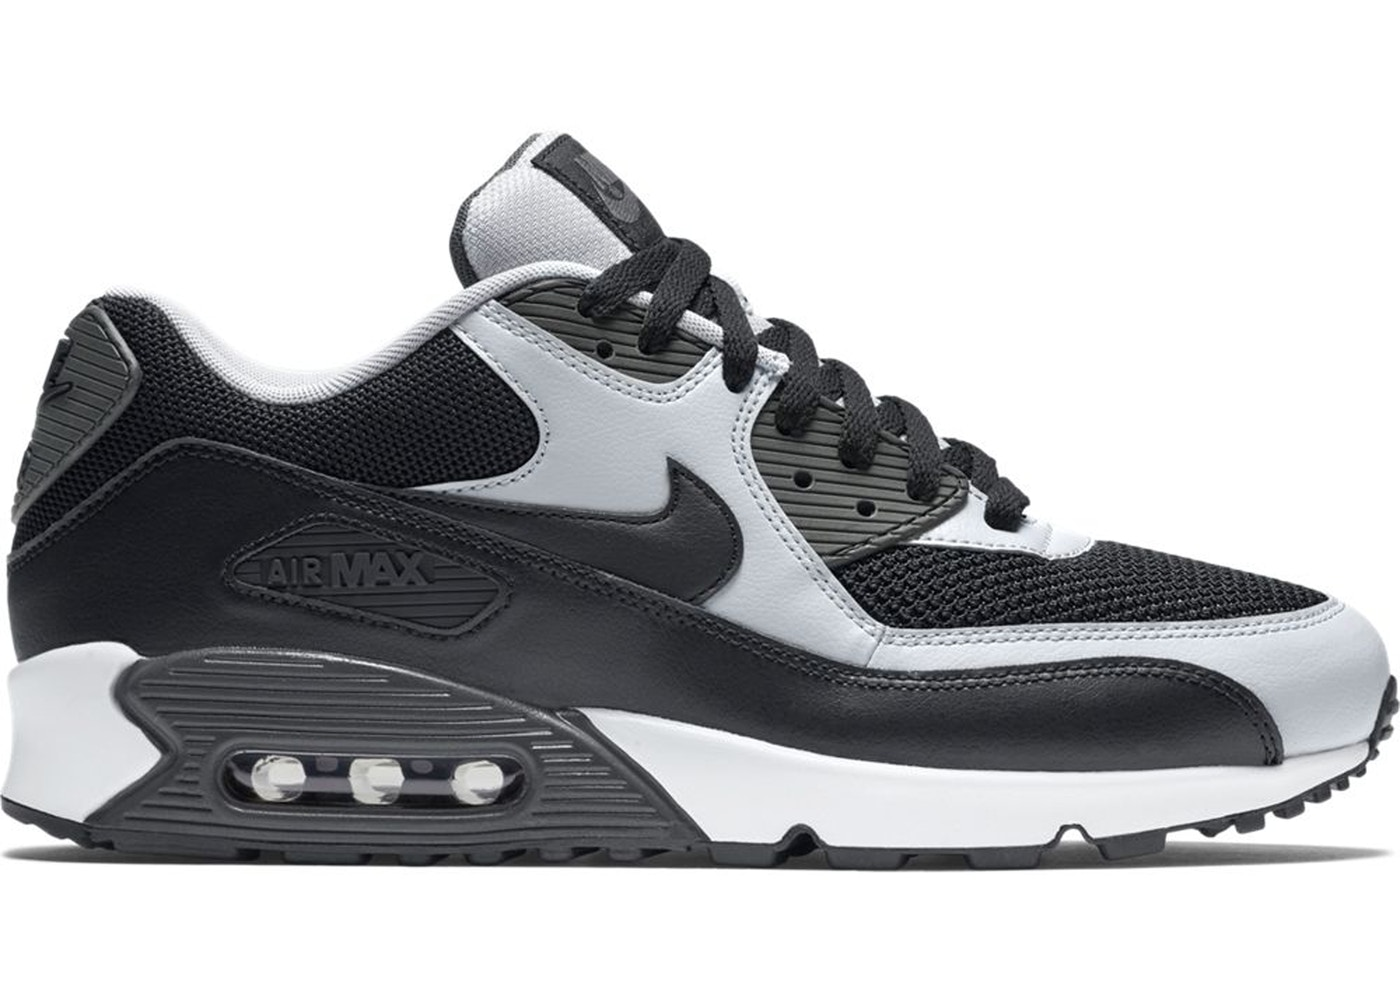 Buy Nike Air Max 90 Shoes   Deadstock Sneakers 8a923926d